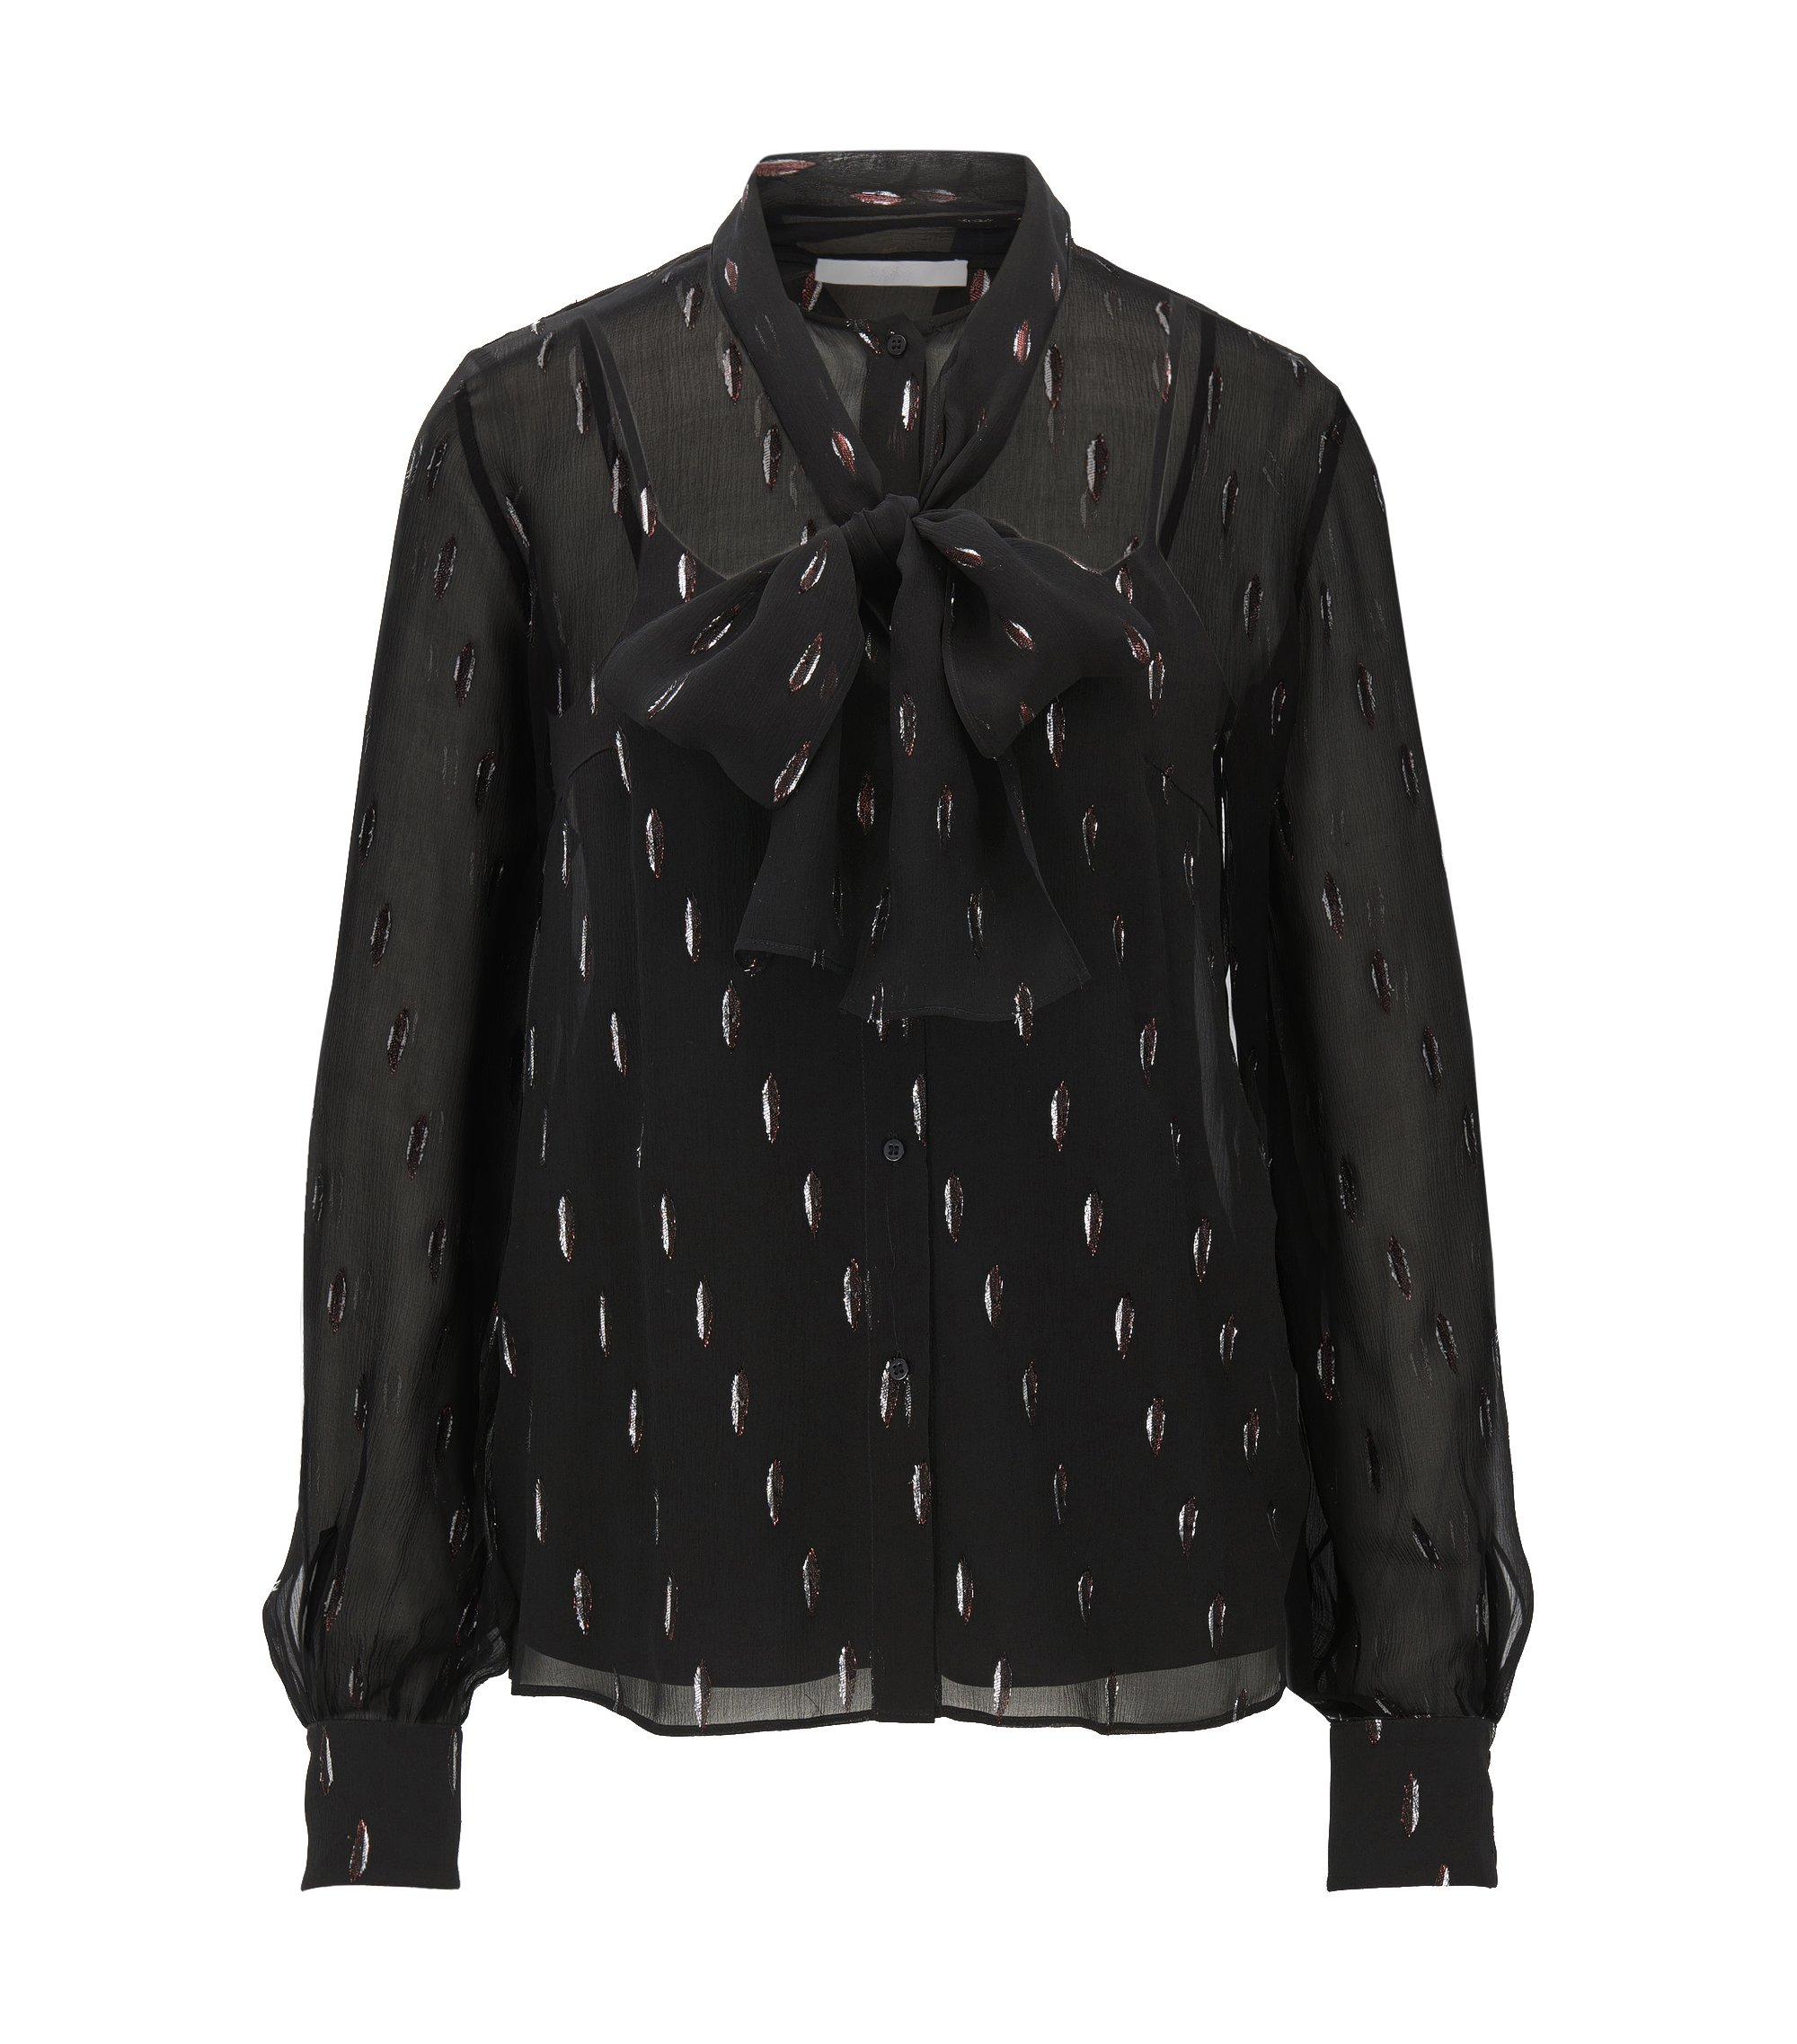 Dotted Metallicized Silk Blouse | Bavimea, Patterned